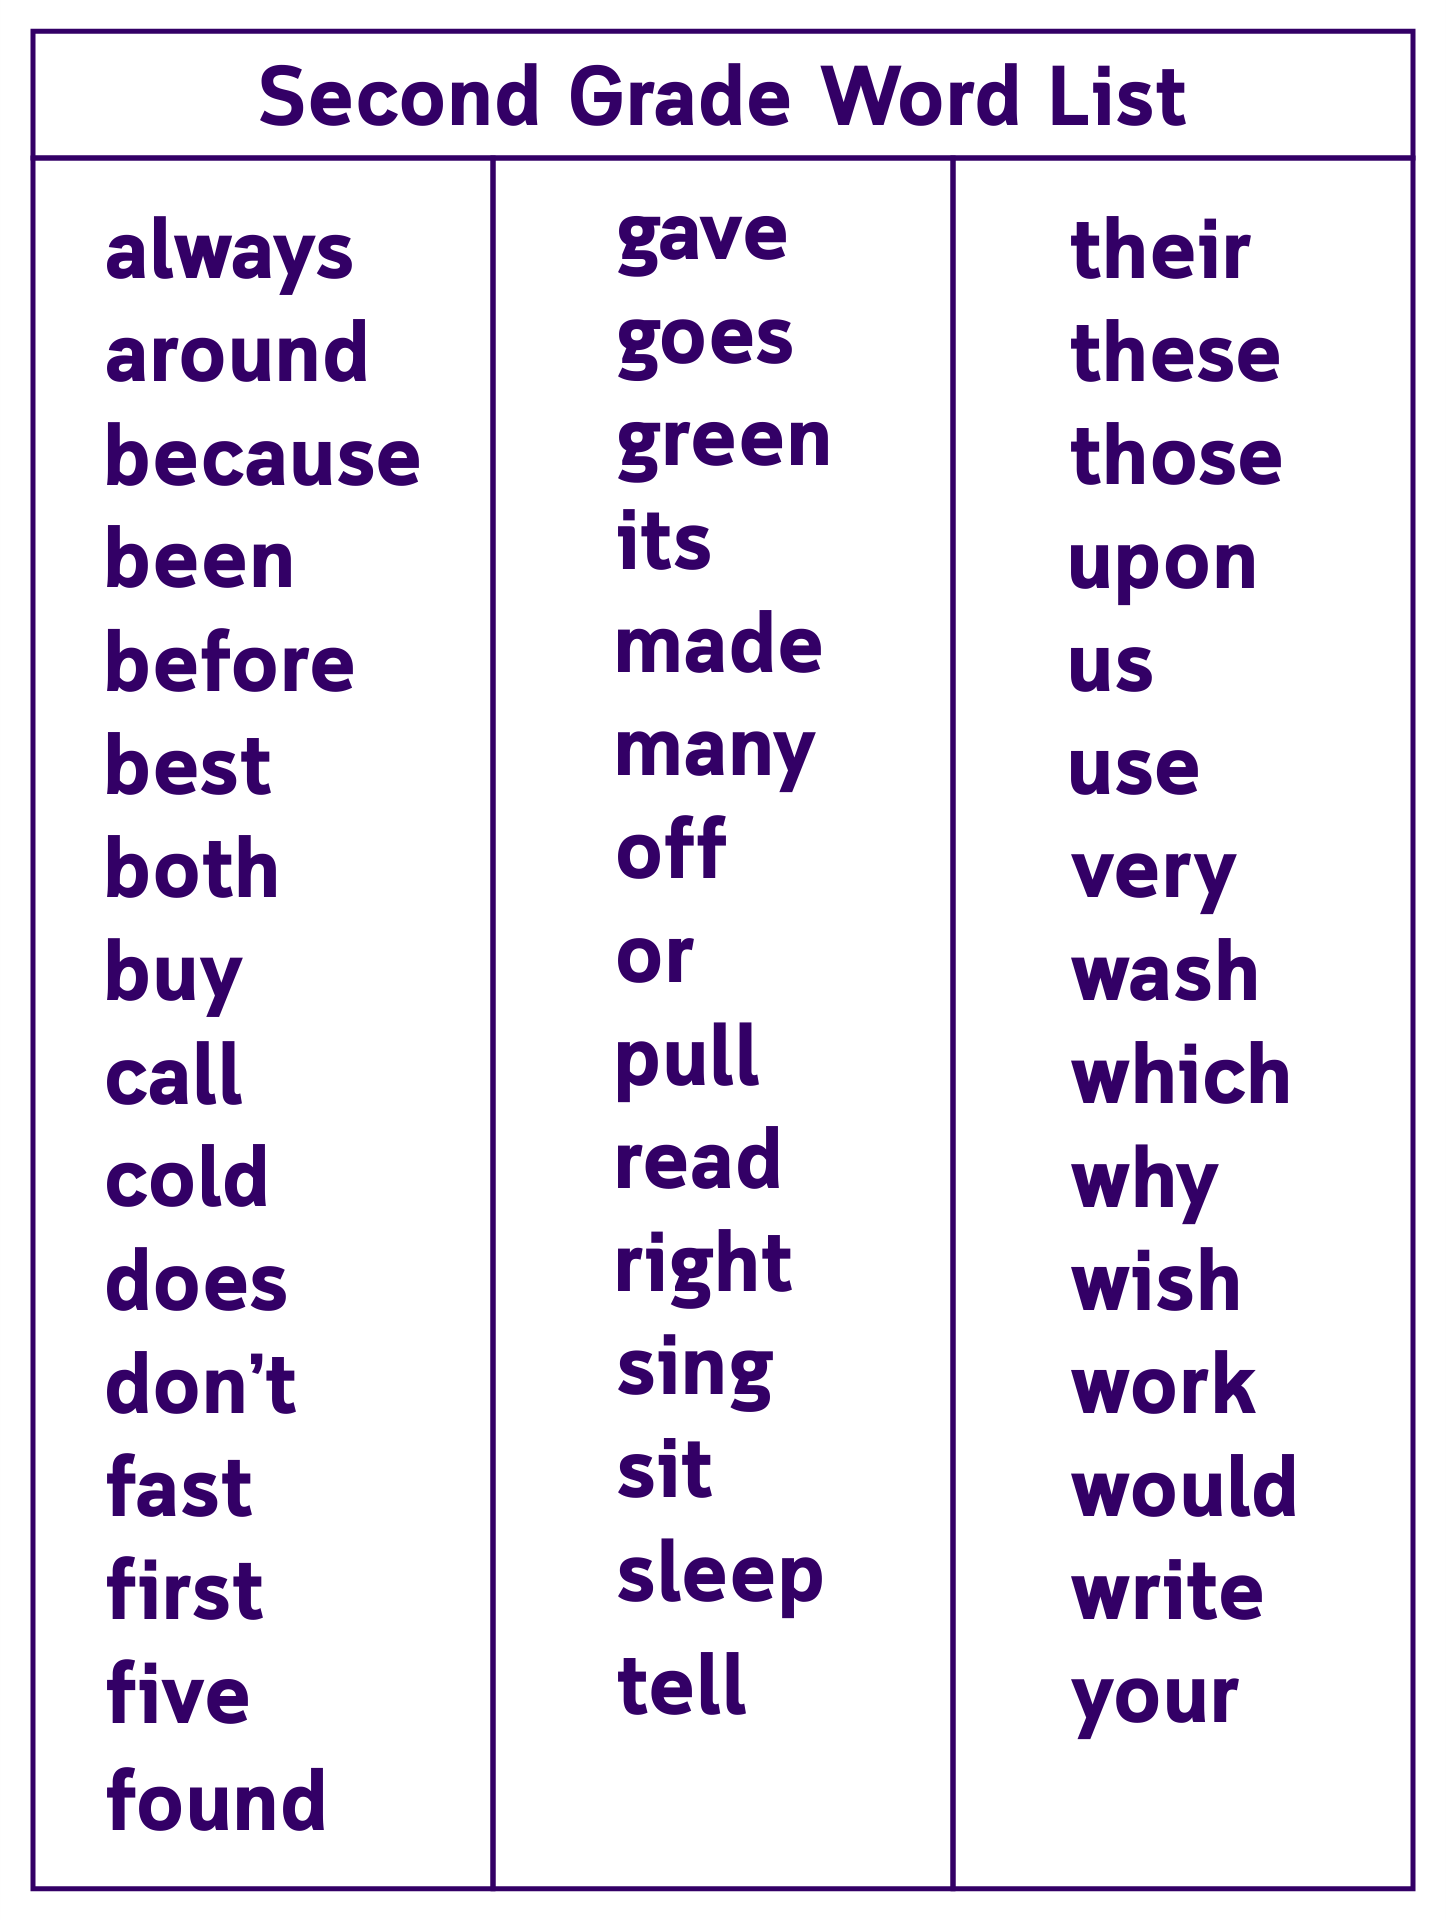 5 Best Second Grade Sight Words Printable